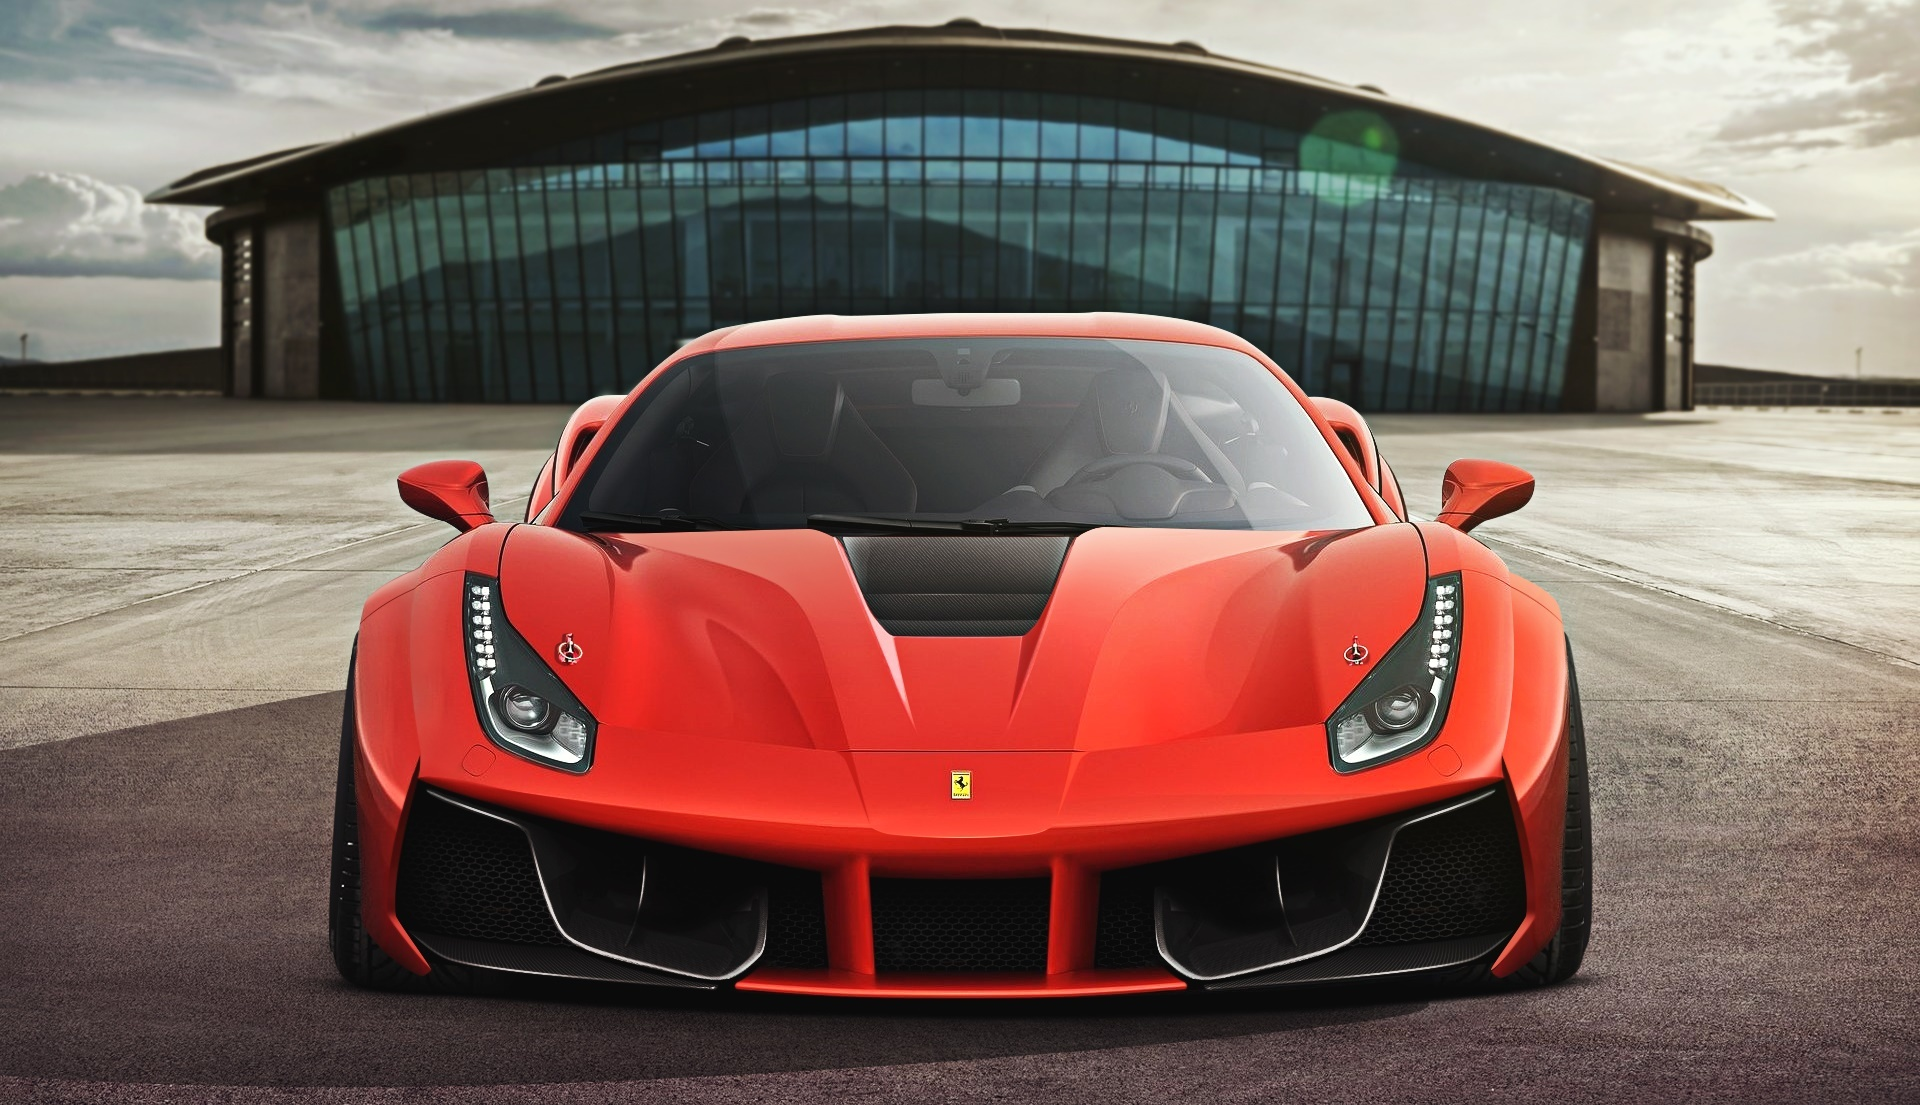 151597 Screensavers and Wallpapers Ferrari for phone. Download Ferrari, Cars, Front View, 2015, 488, Gtb pictures for free